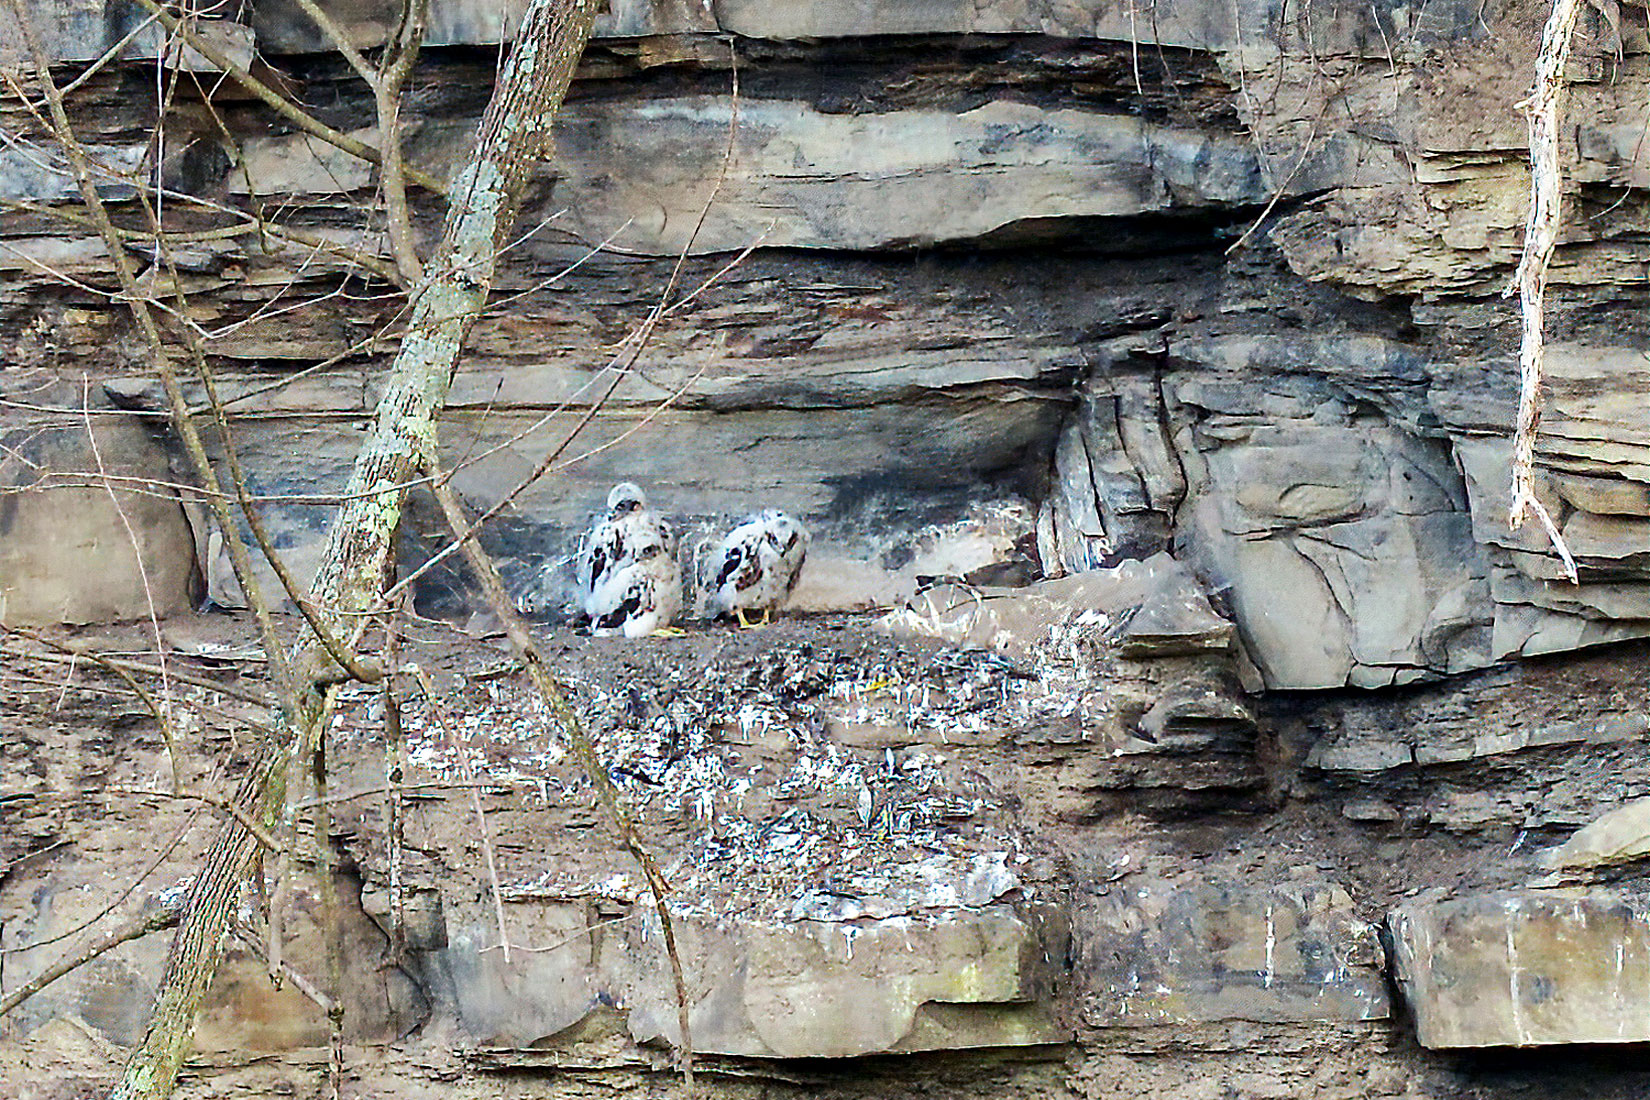 Three young Peregrine Falcons at Taughannock Gorge, May 2020. Tim Gallagher